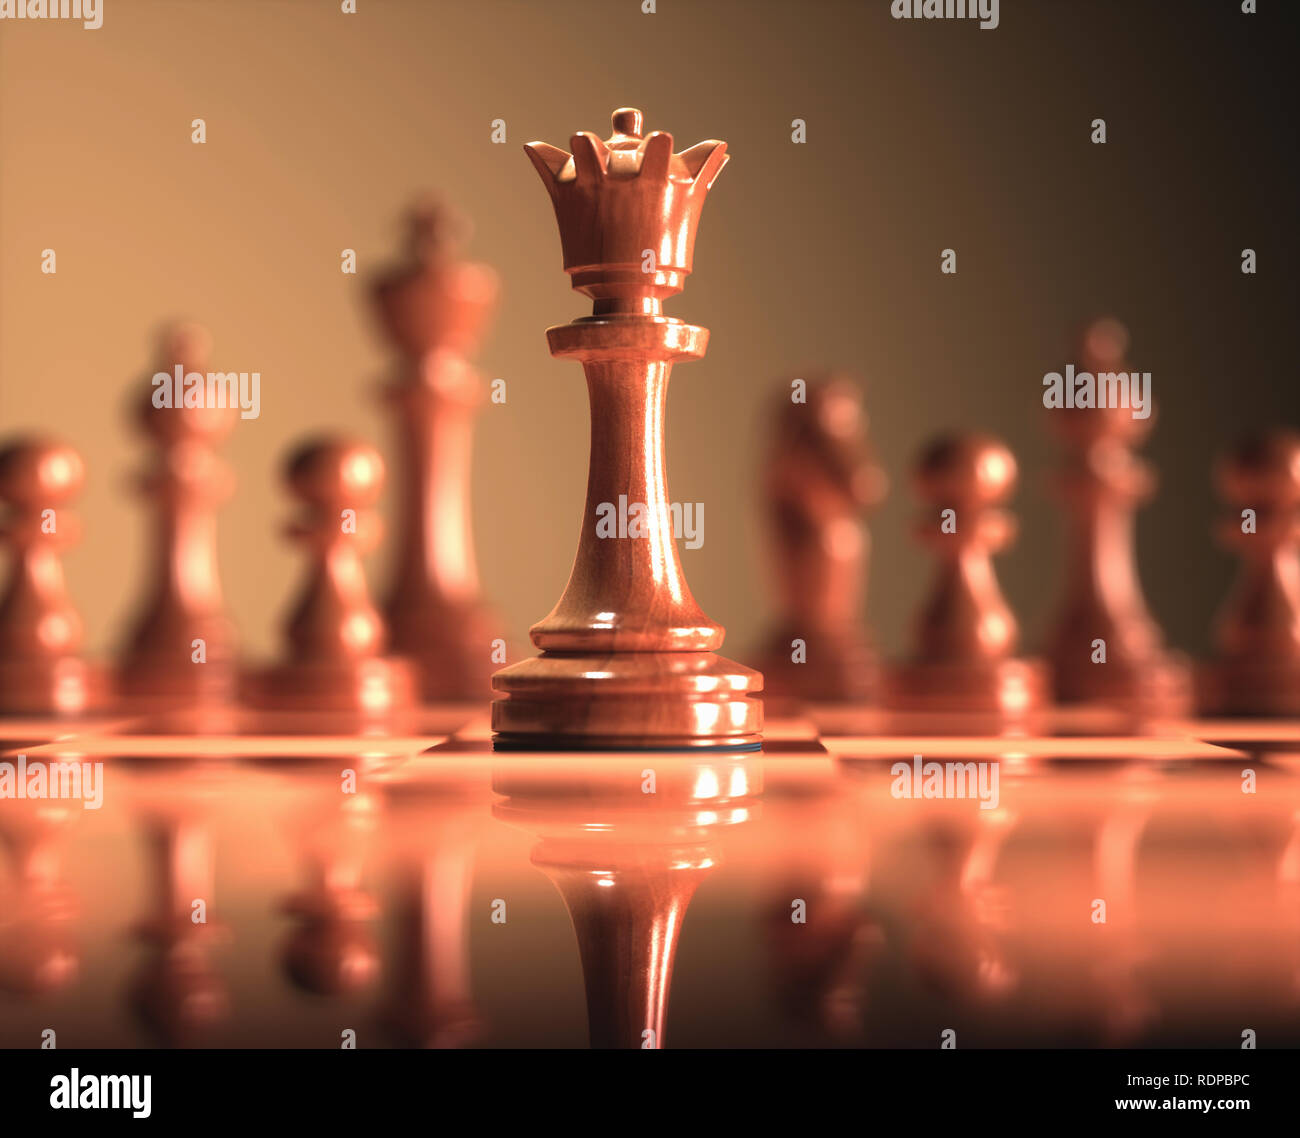 Queen chess piece, illustration. - Stock Image